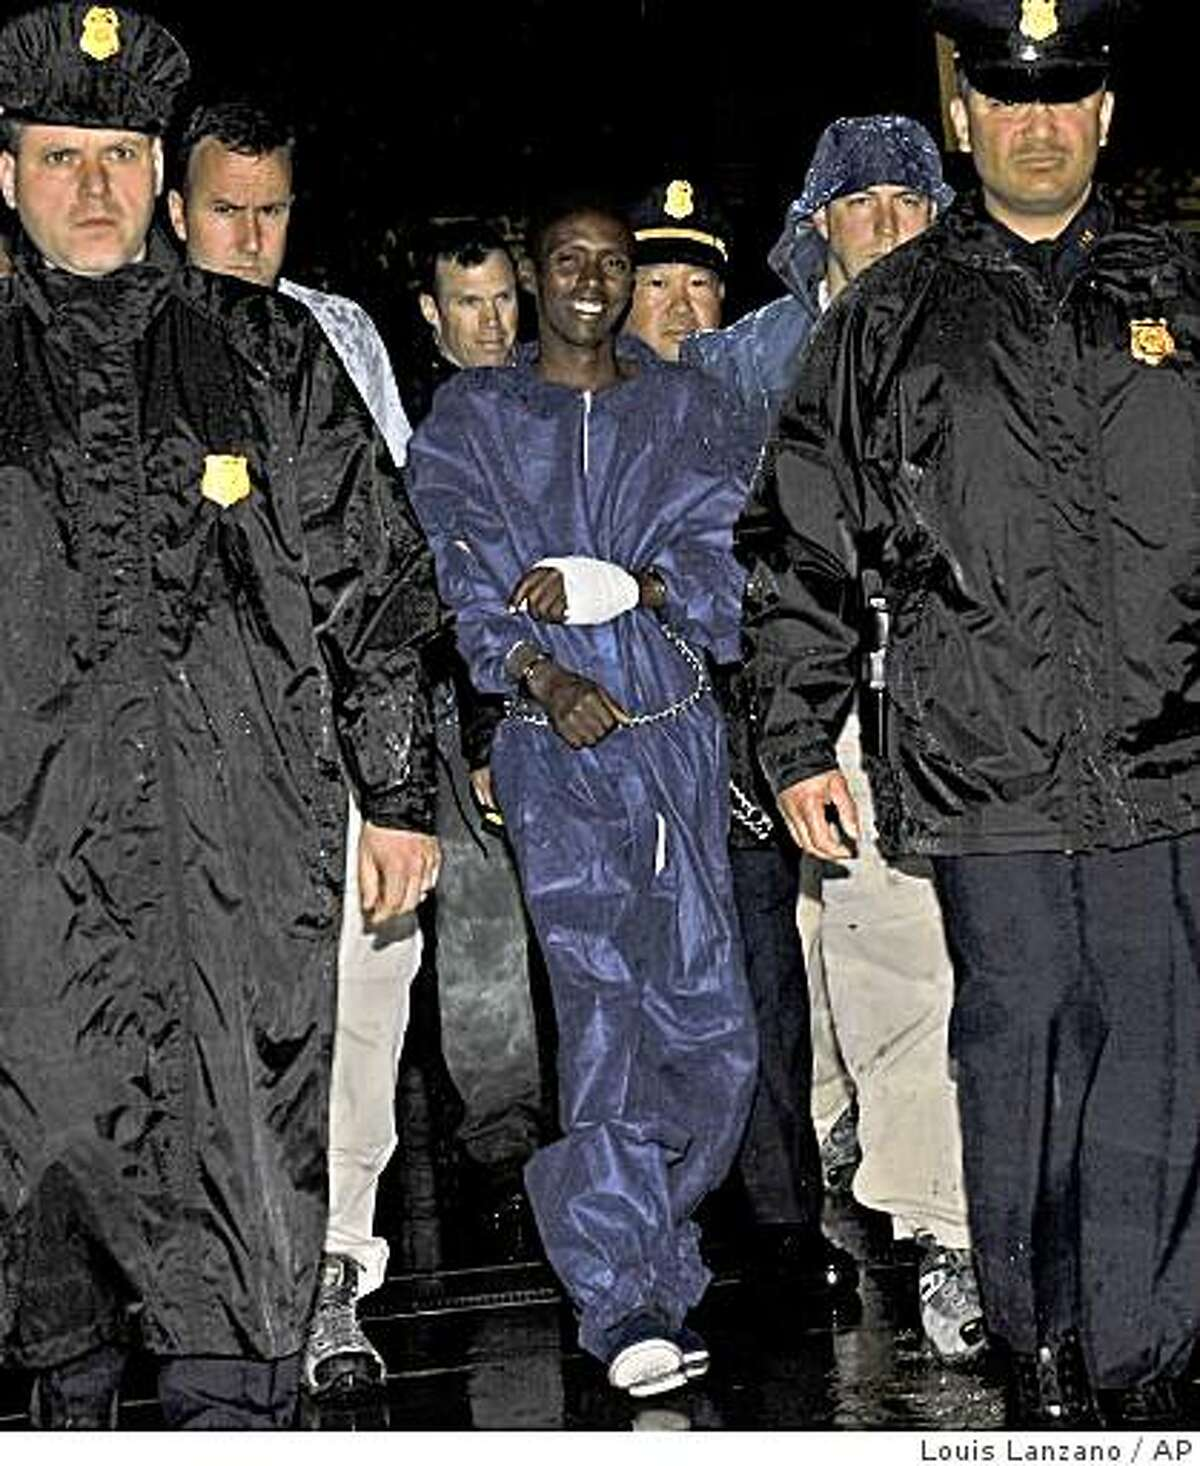 ** CAPTION CORRECTION, CORRECTS SPELLING OF SUSPECT'S NAME TO ABDIWALI ABDIQADIR MUSE, NOT ABDUHL WALI-I-MUSI ** Police and FBI agents escort the Somali pirate suspect U.S. officials identified as Abdiwali Abdiqadir Muse into FBI headquarters in New York on Monday, April 20, 2009. Muse is the sole surviving Somali pirate suspect from the hostage-taking of commercial ship captain Richard Phillips from the Maersk Alabama. (AP Photo/Louis Lanzano)